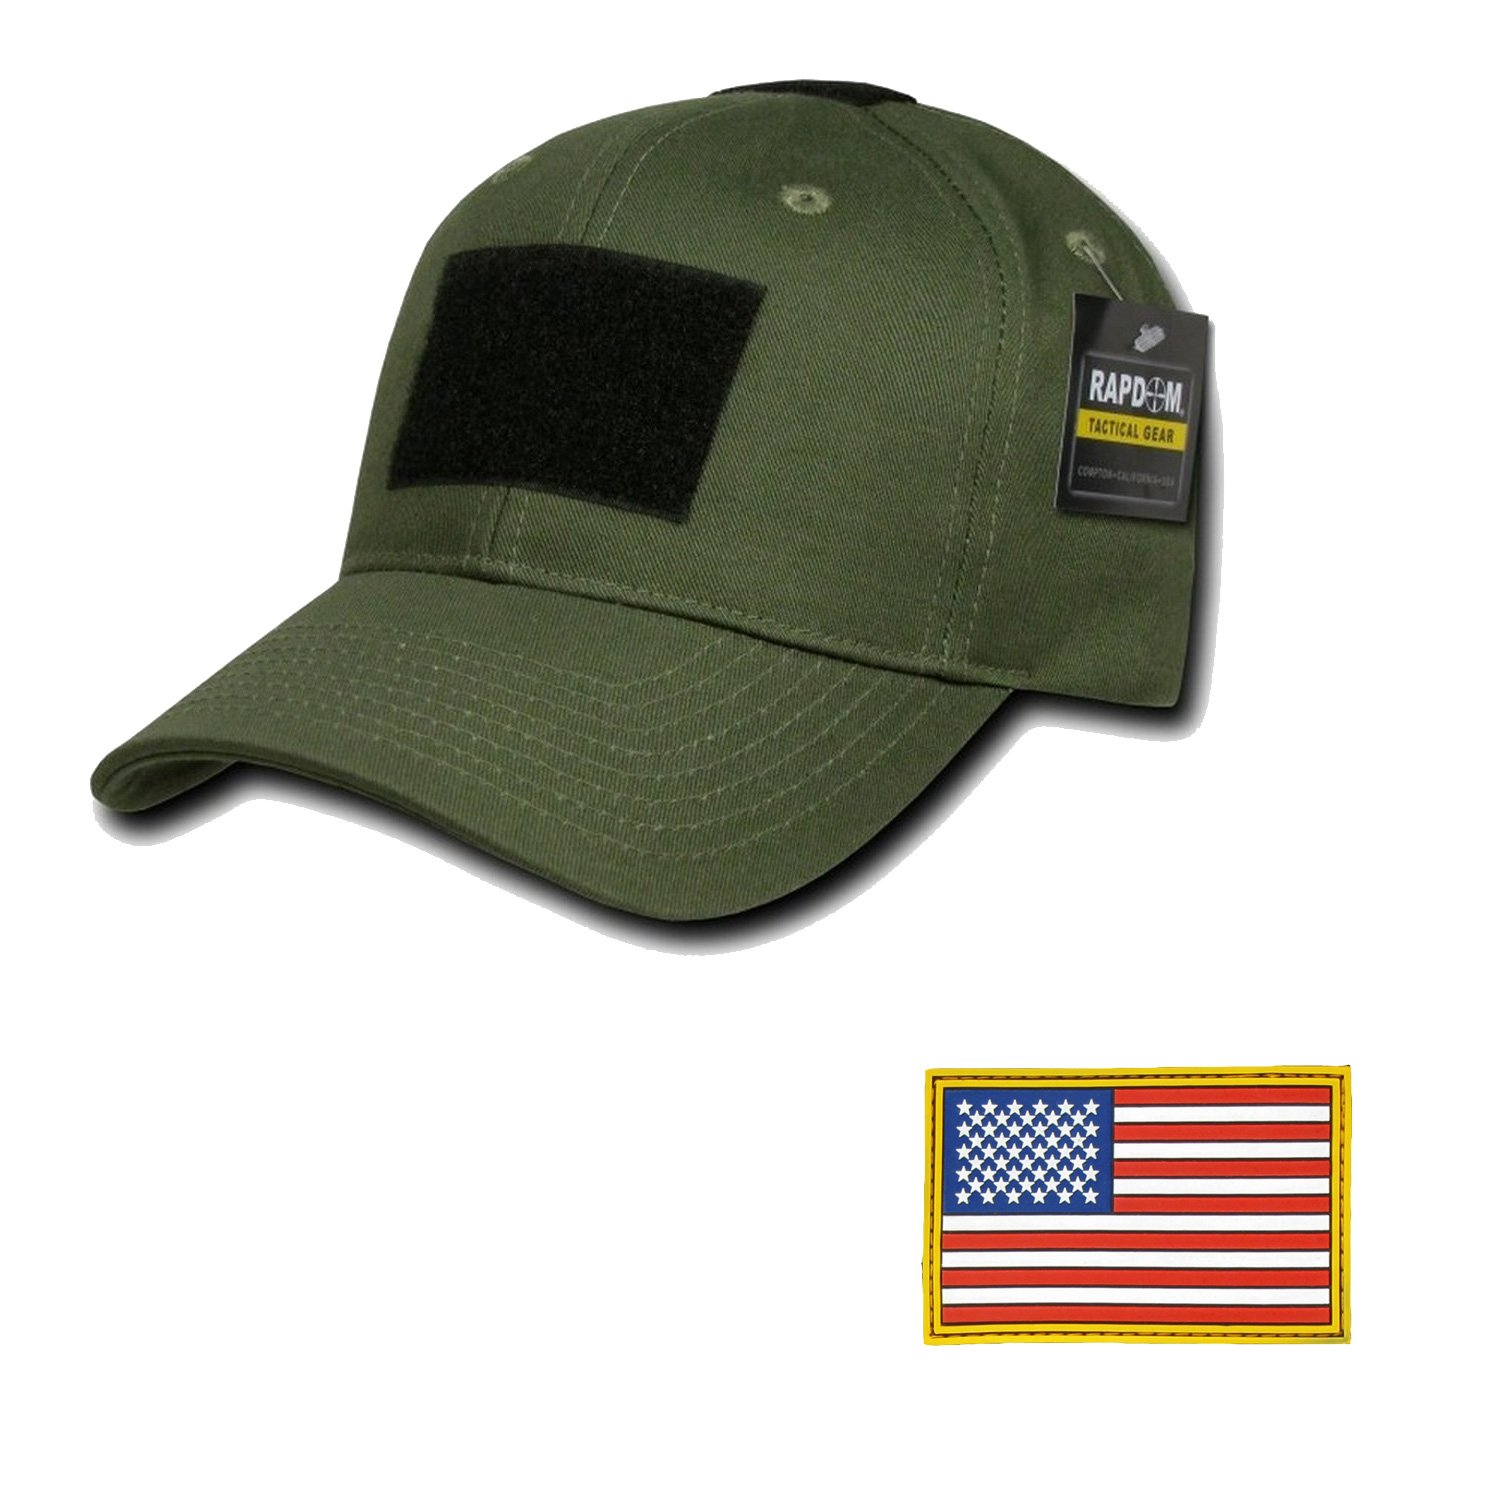 RAPDOM Genuine Tactical Constructed Ball Operator Cap Olive Caps with Free Patch (Olive, USA Flag Original Patch) by RAPDOM